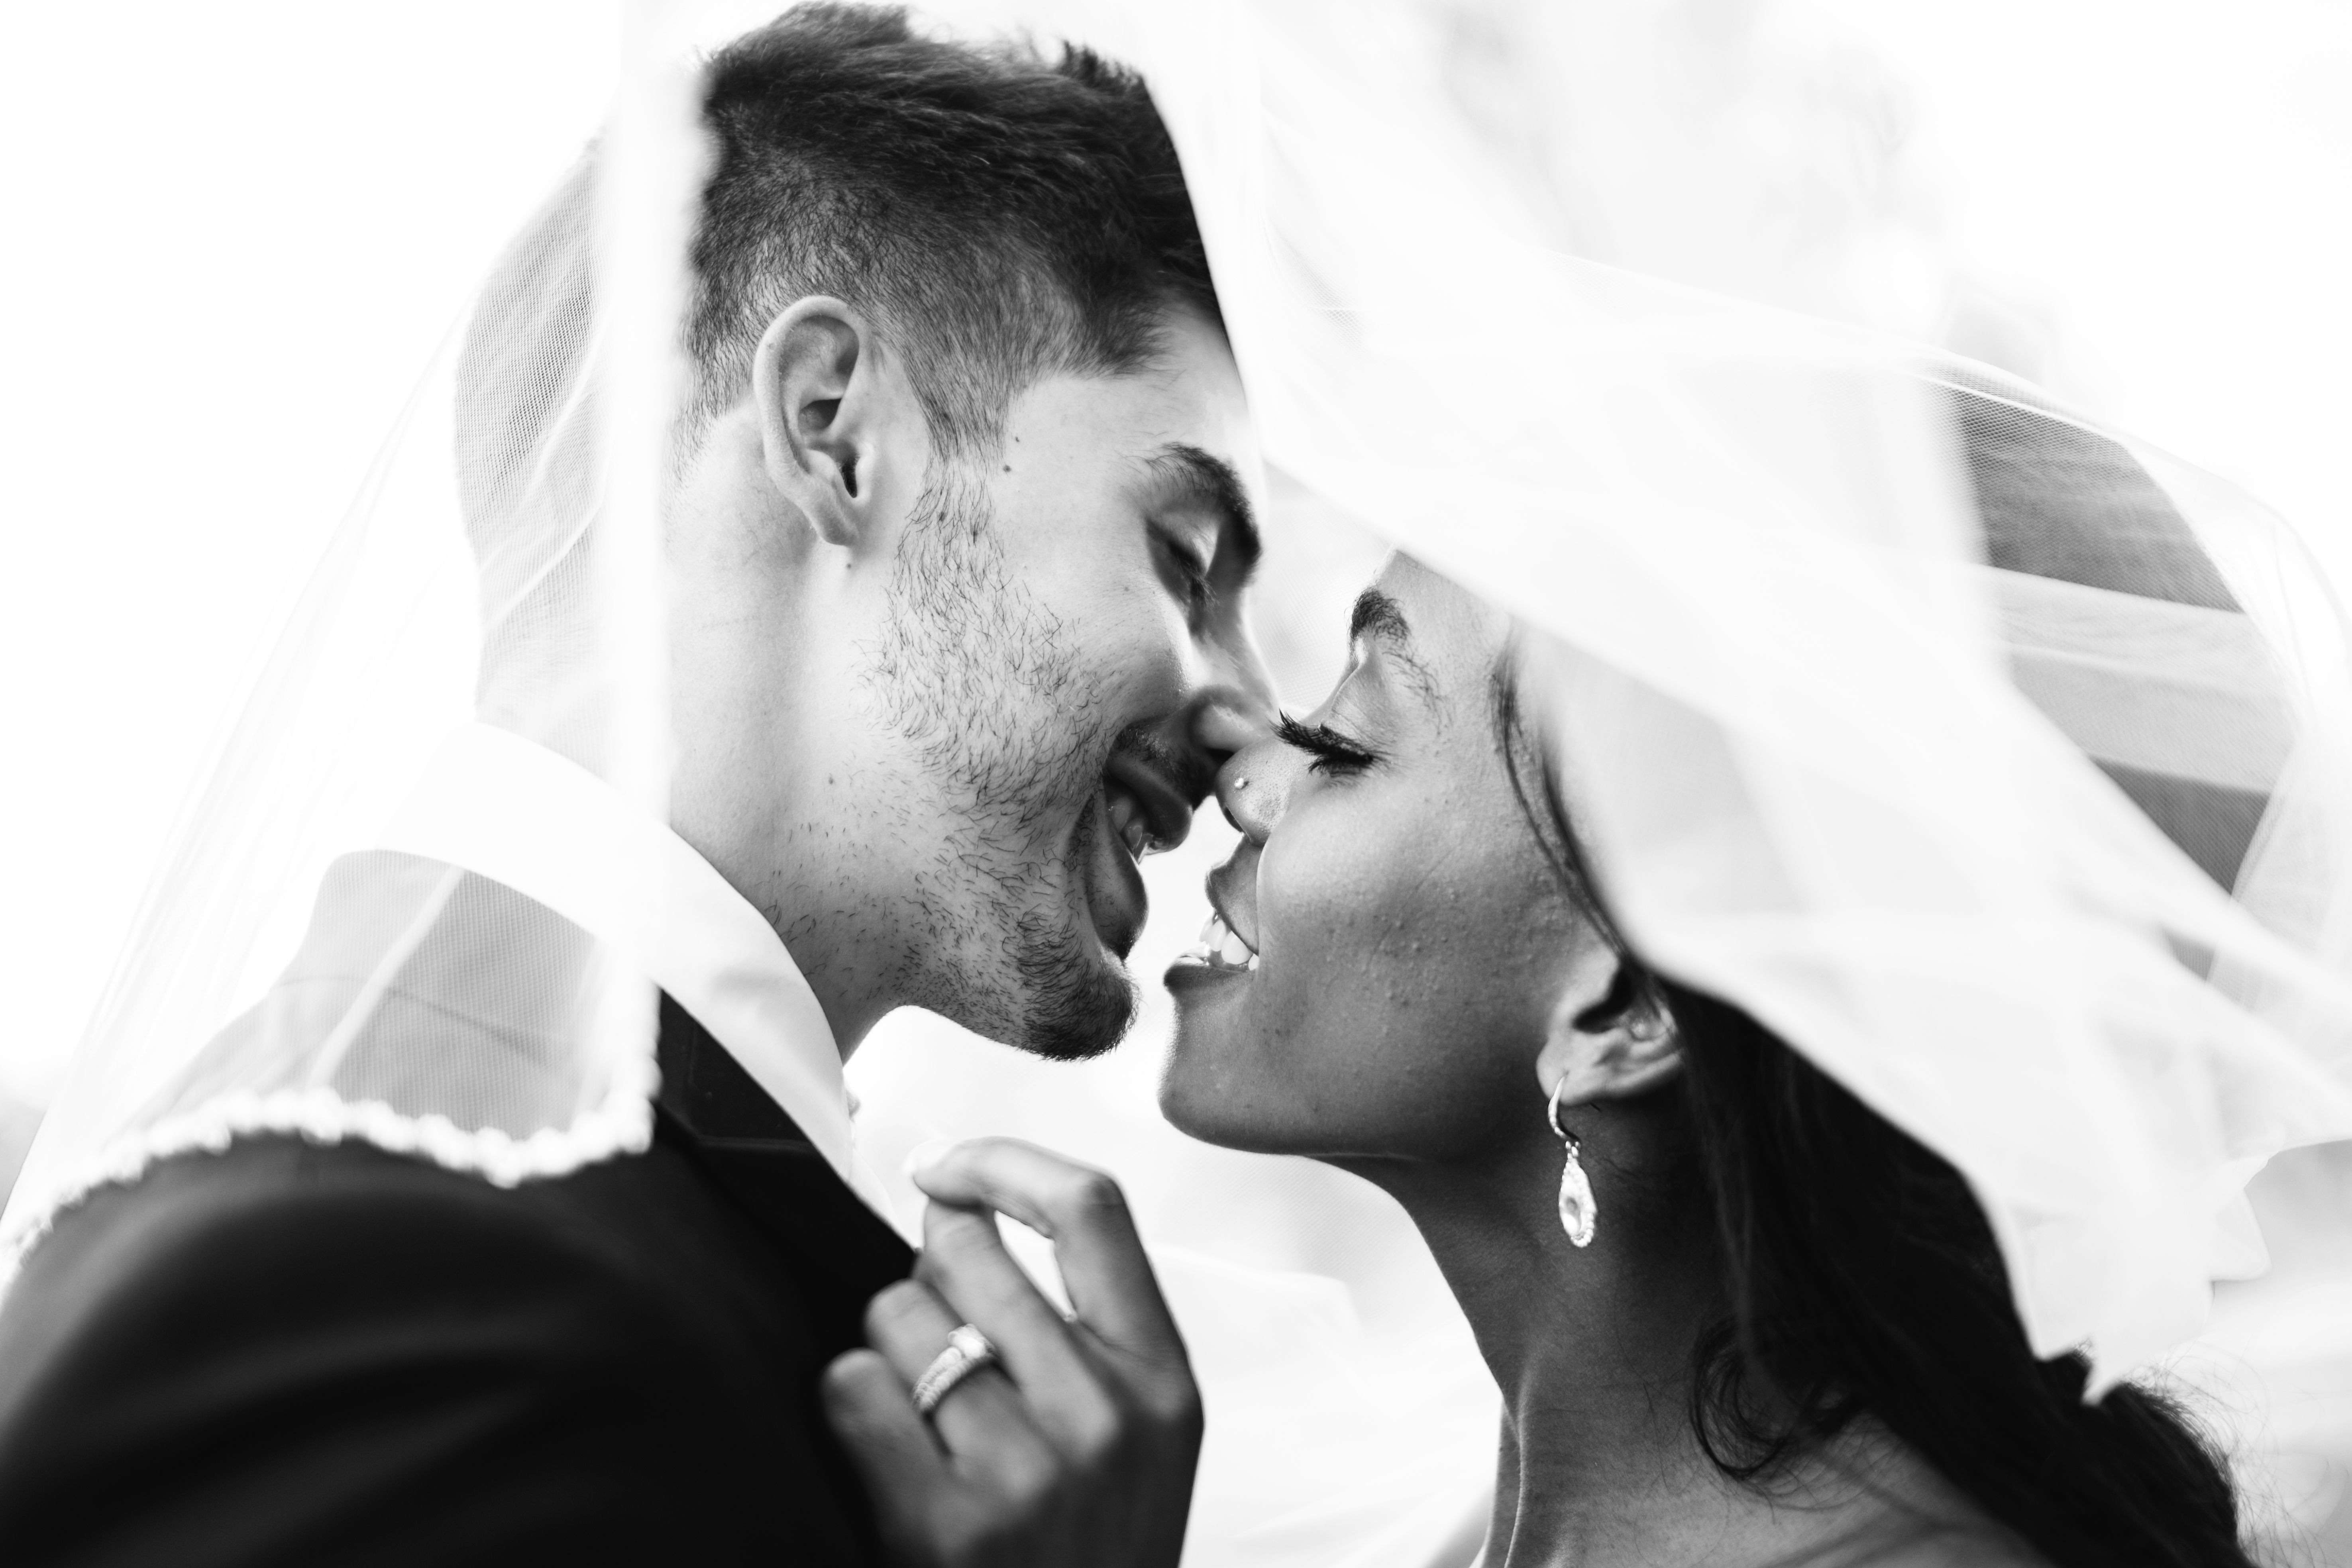 interracial couple, black white bride and groom, haitian wedding, haitian bride, interracial wedding